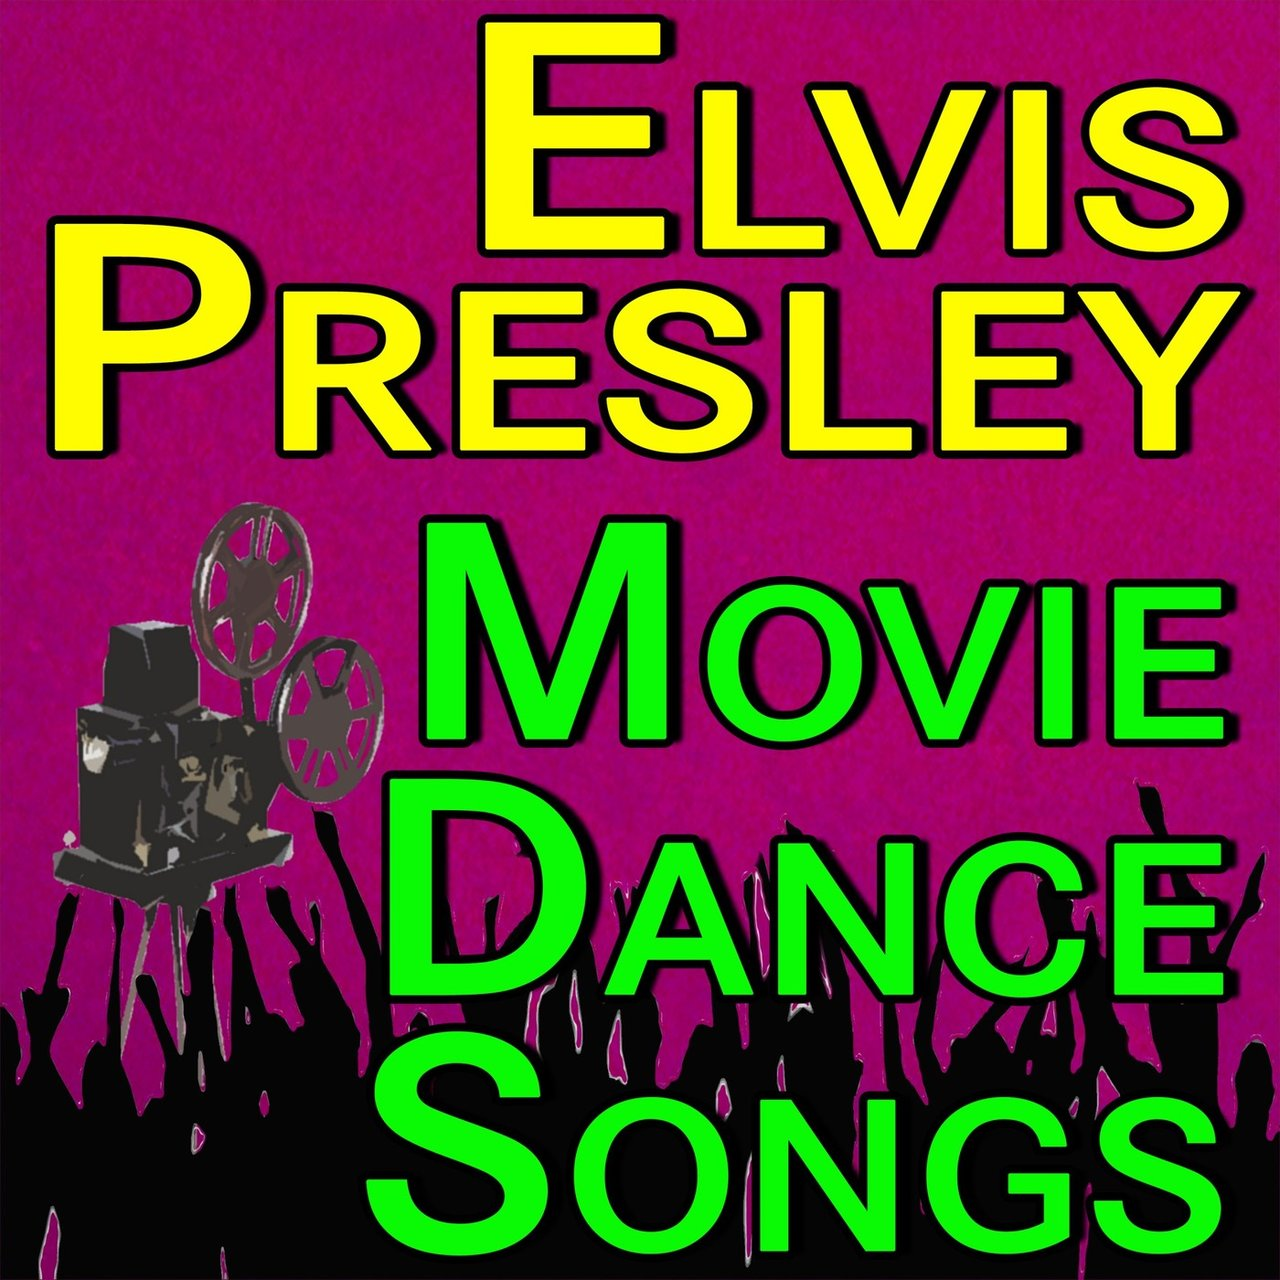 Elvis Presley Movie Dance Songs